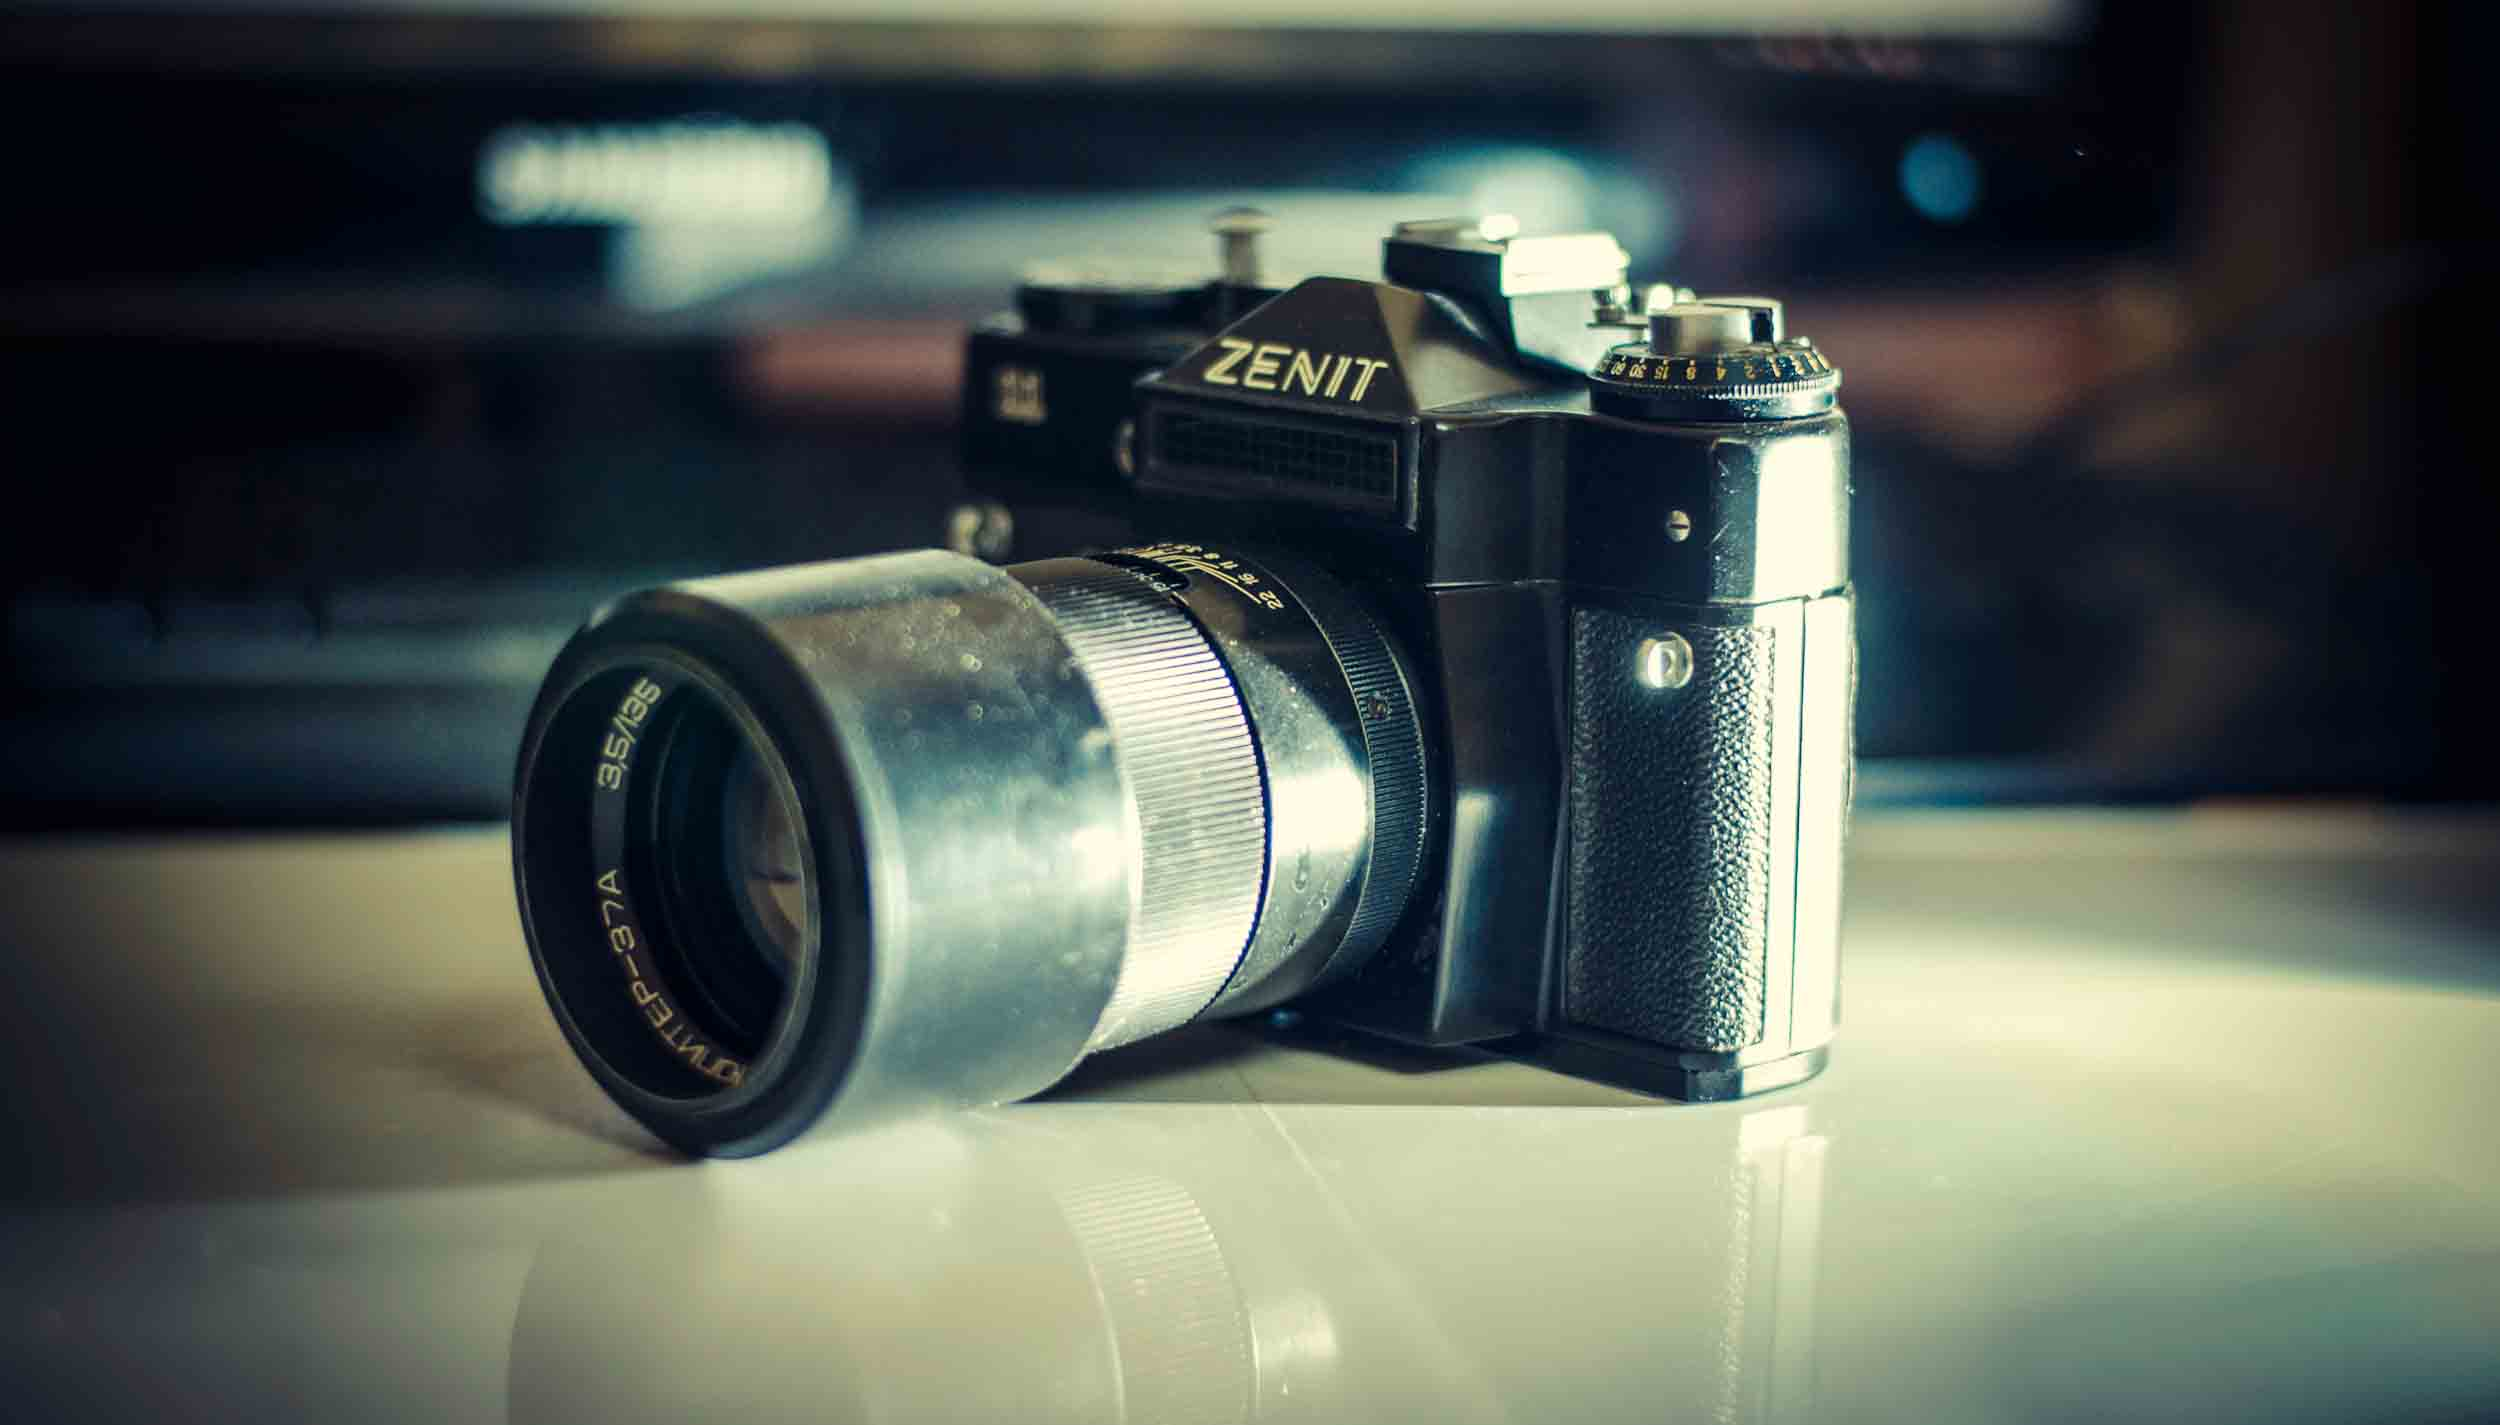 Canon Camera Hd Wallpapers Download HD Wallpapers 2500x1425